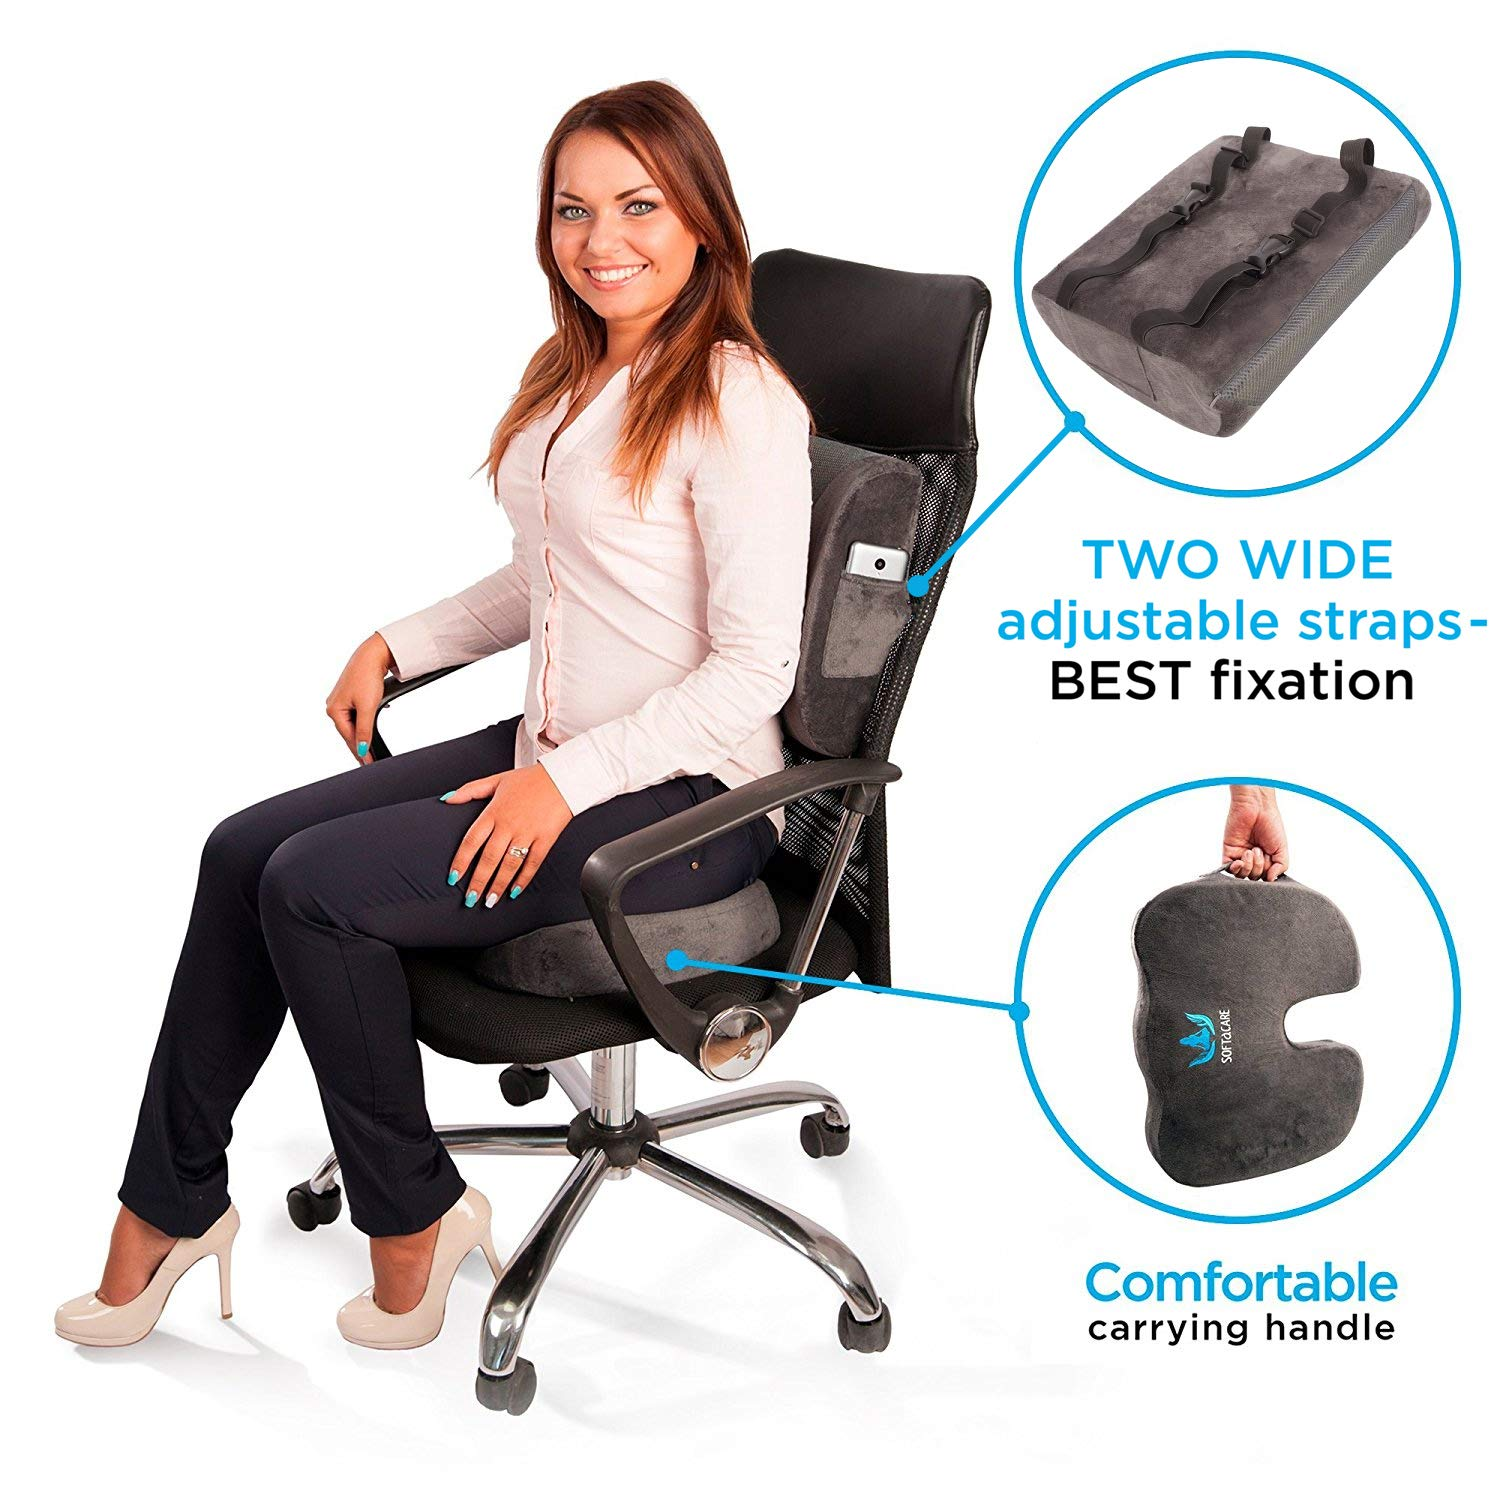 Desk Chair Seat Pad Cheaper Than Retail Price Buy Clothing Accessories And Lifestyle Products For Women Men